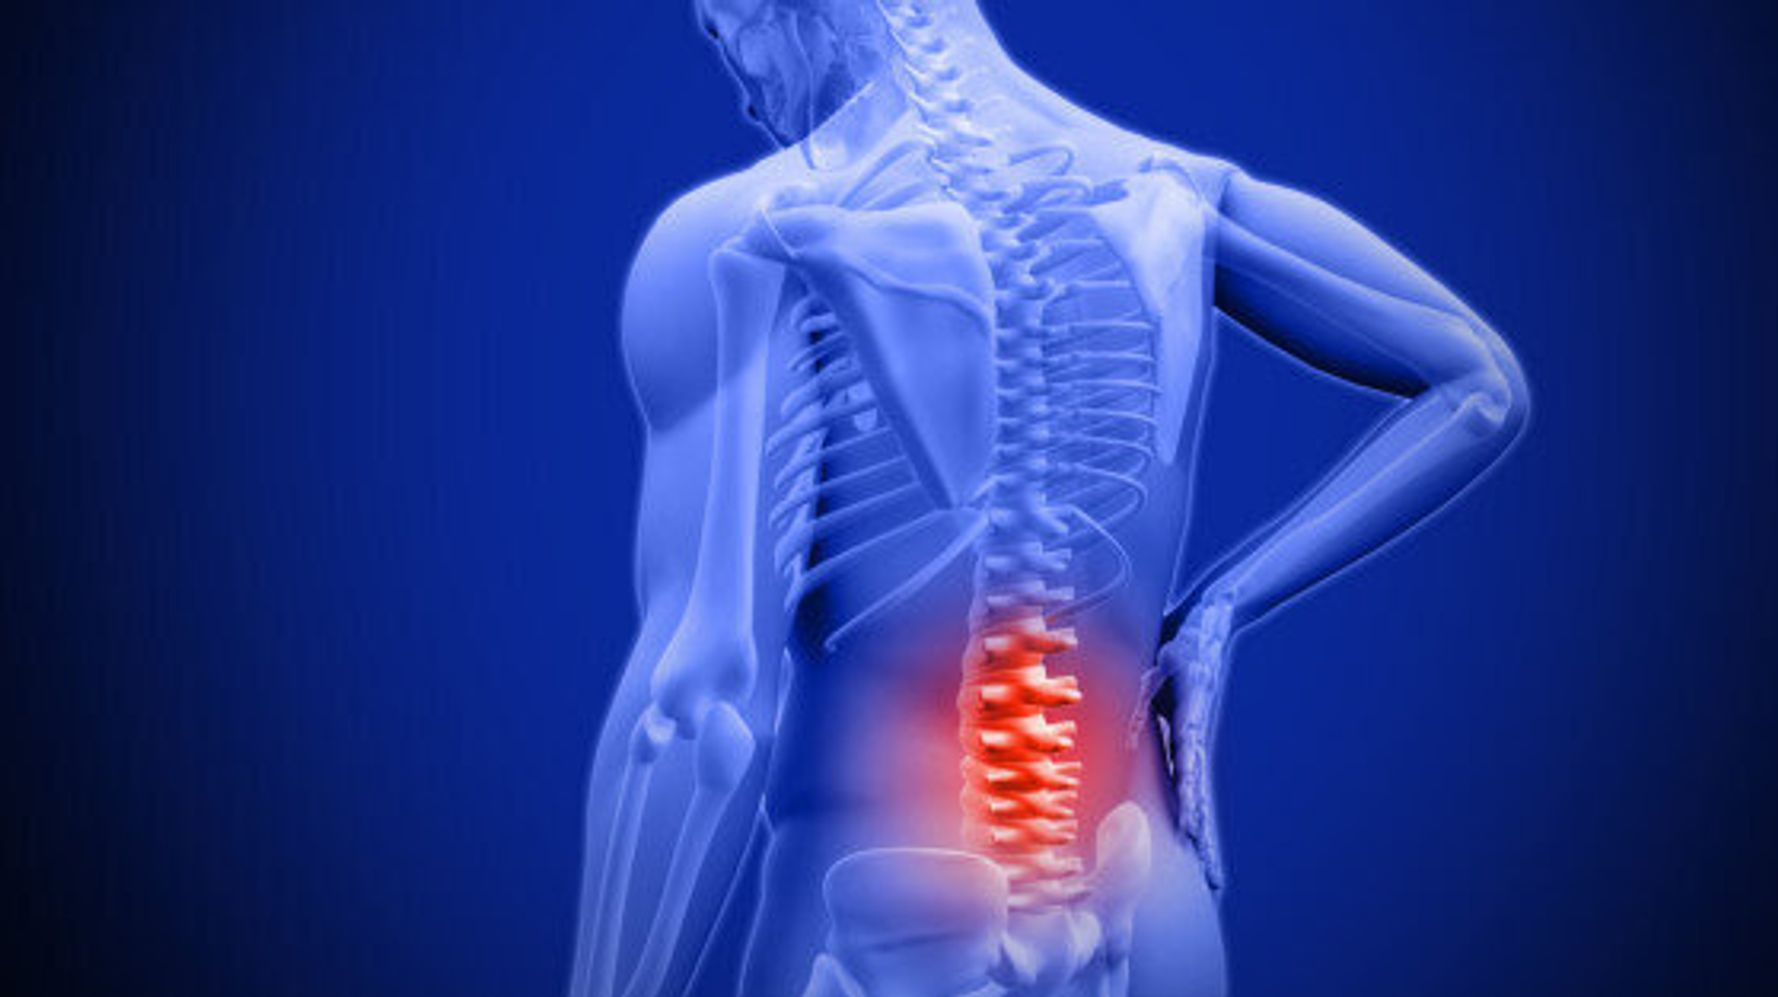 Suffering From Lower Back Pain? These Exercises Can Help